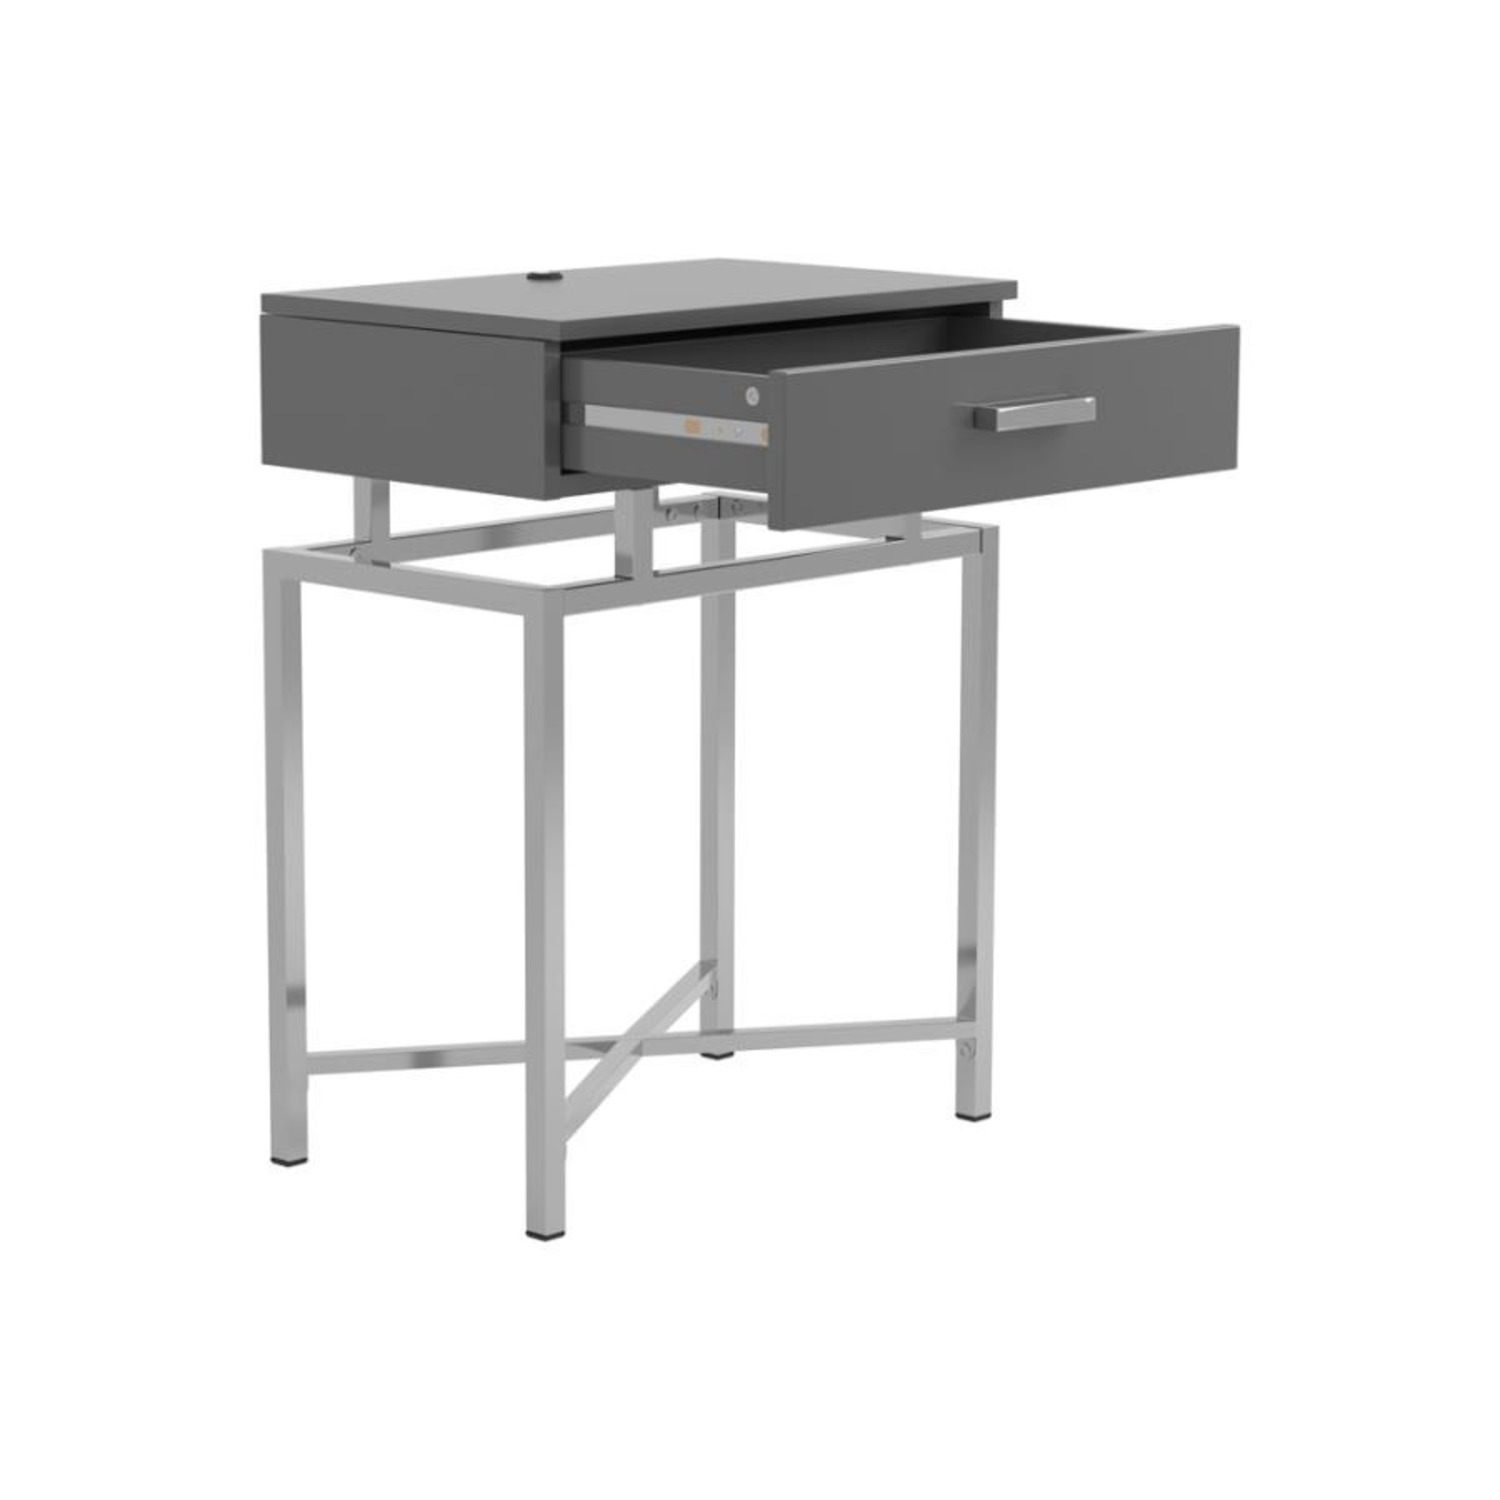 Accent Table In Grey High Gloss Finish - image-1